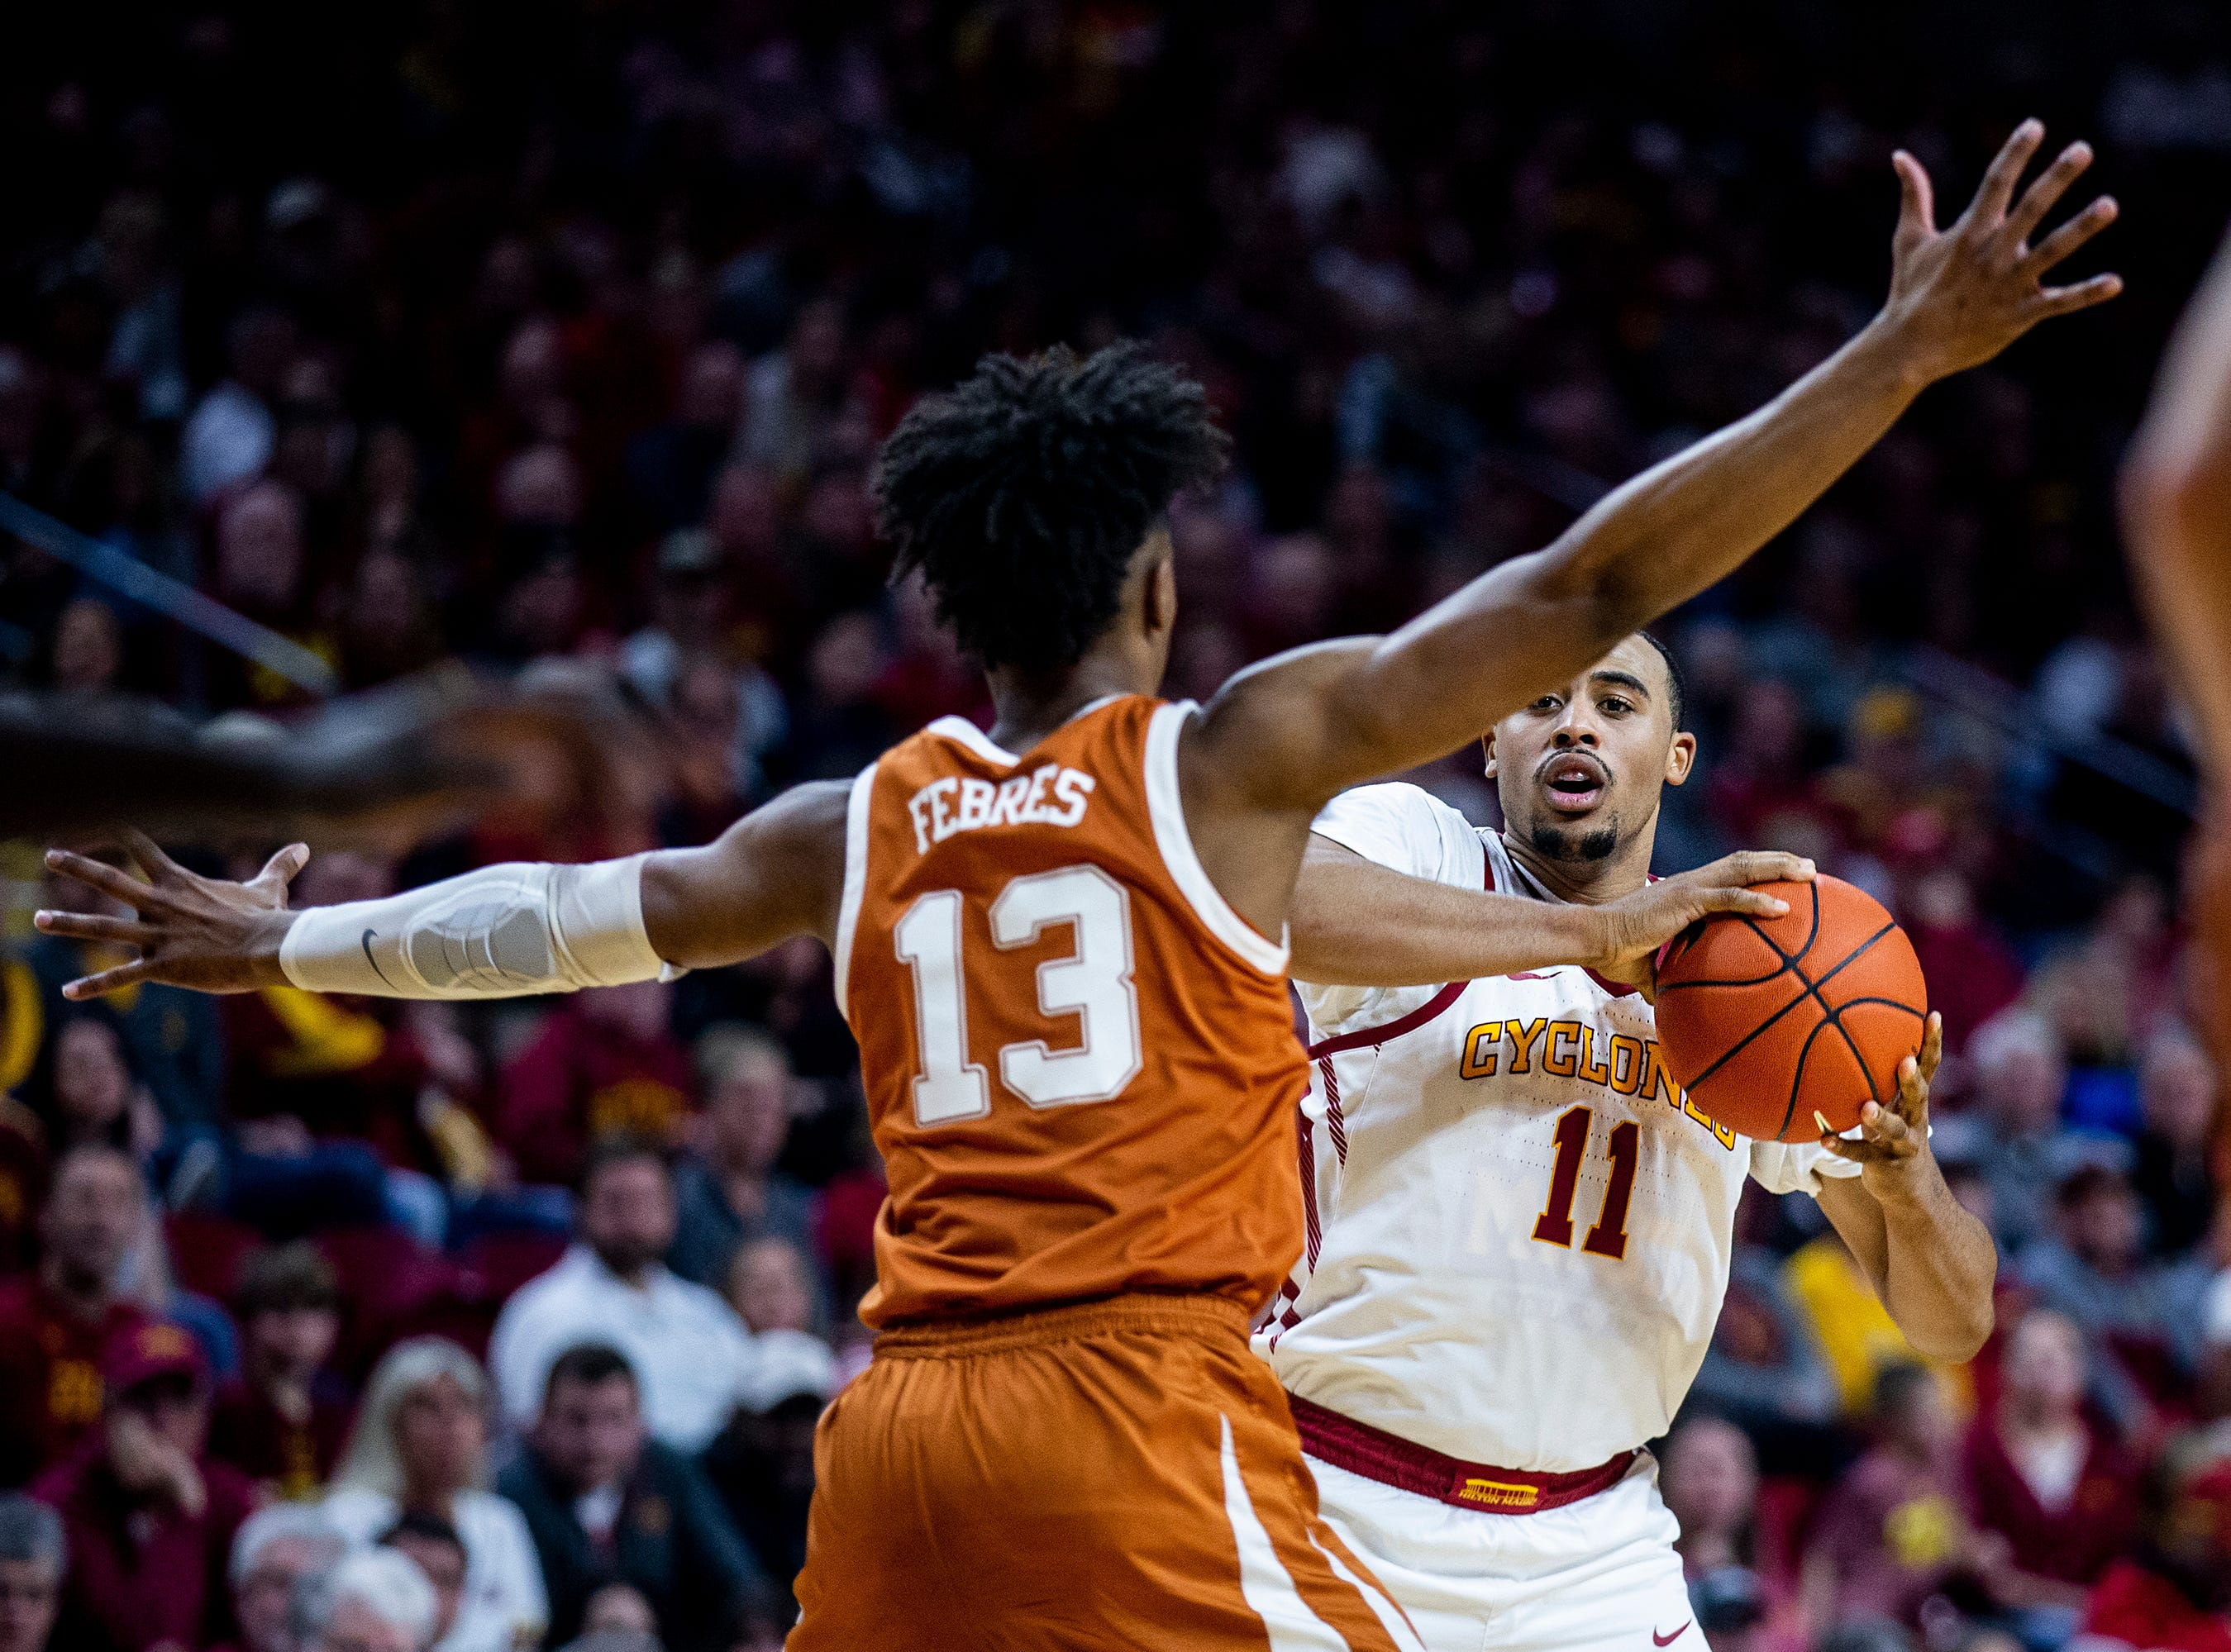 Iowa State's Talen Horton-Tucker looks for an open pass during the Iowa State men's basketball game against Texas on Saturday, Feb. 2, 2019, in Hilton Coliseum. The Cyclones defeated the Longhorns 65-60.